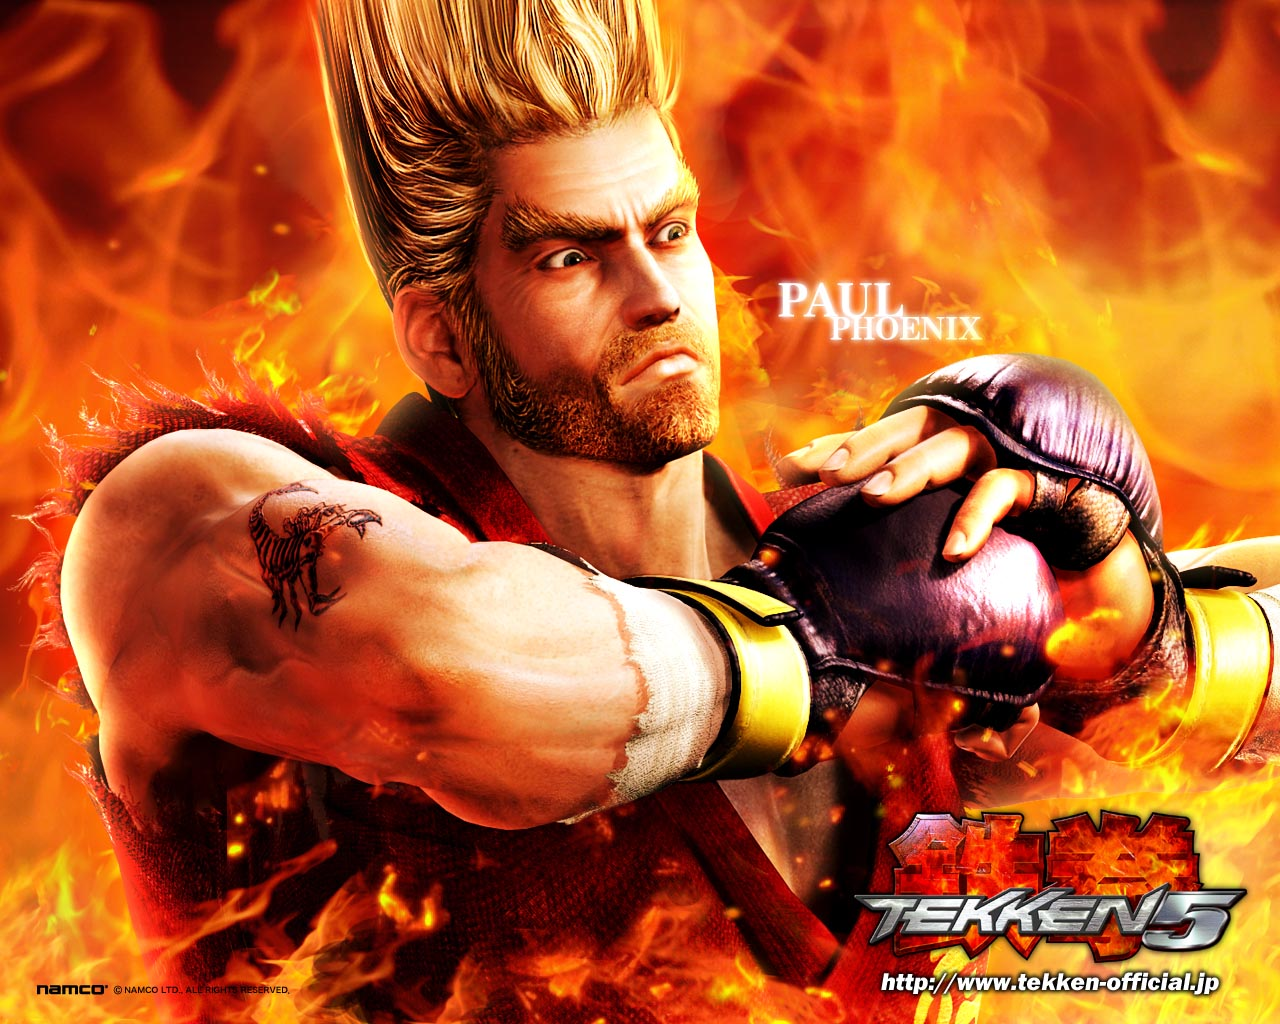 HD wallpapers Tekken 5 Game HD Wallpapers all characters in 1280x1024 1280x1024